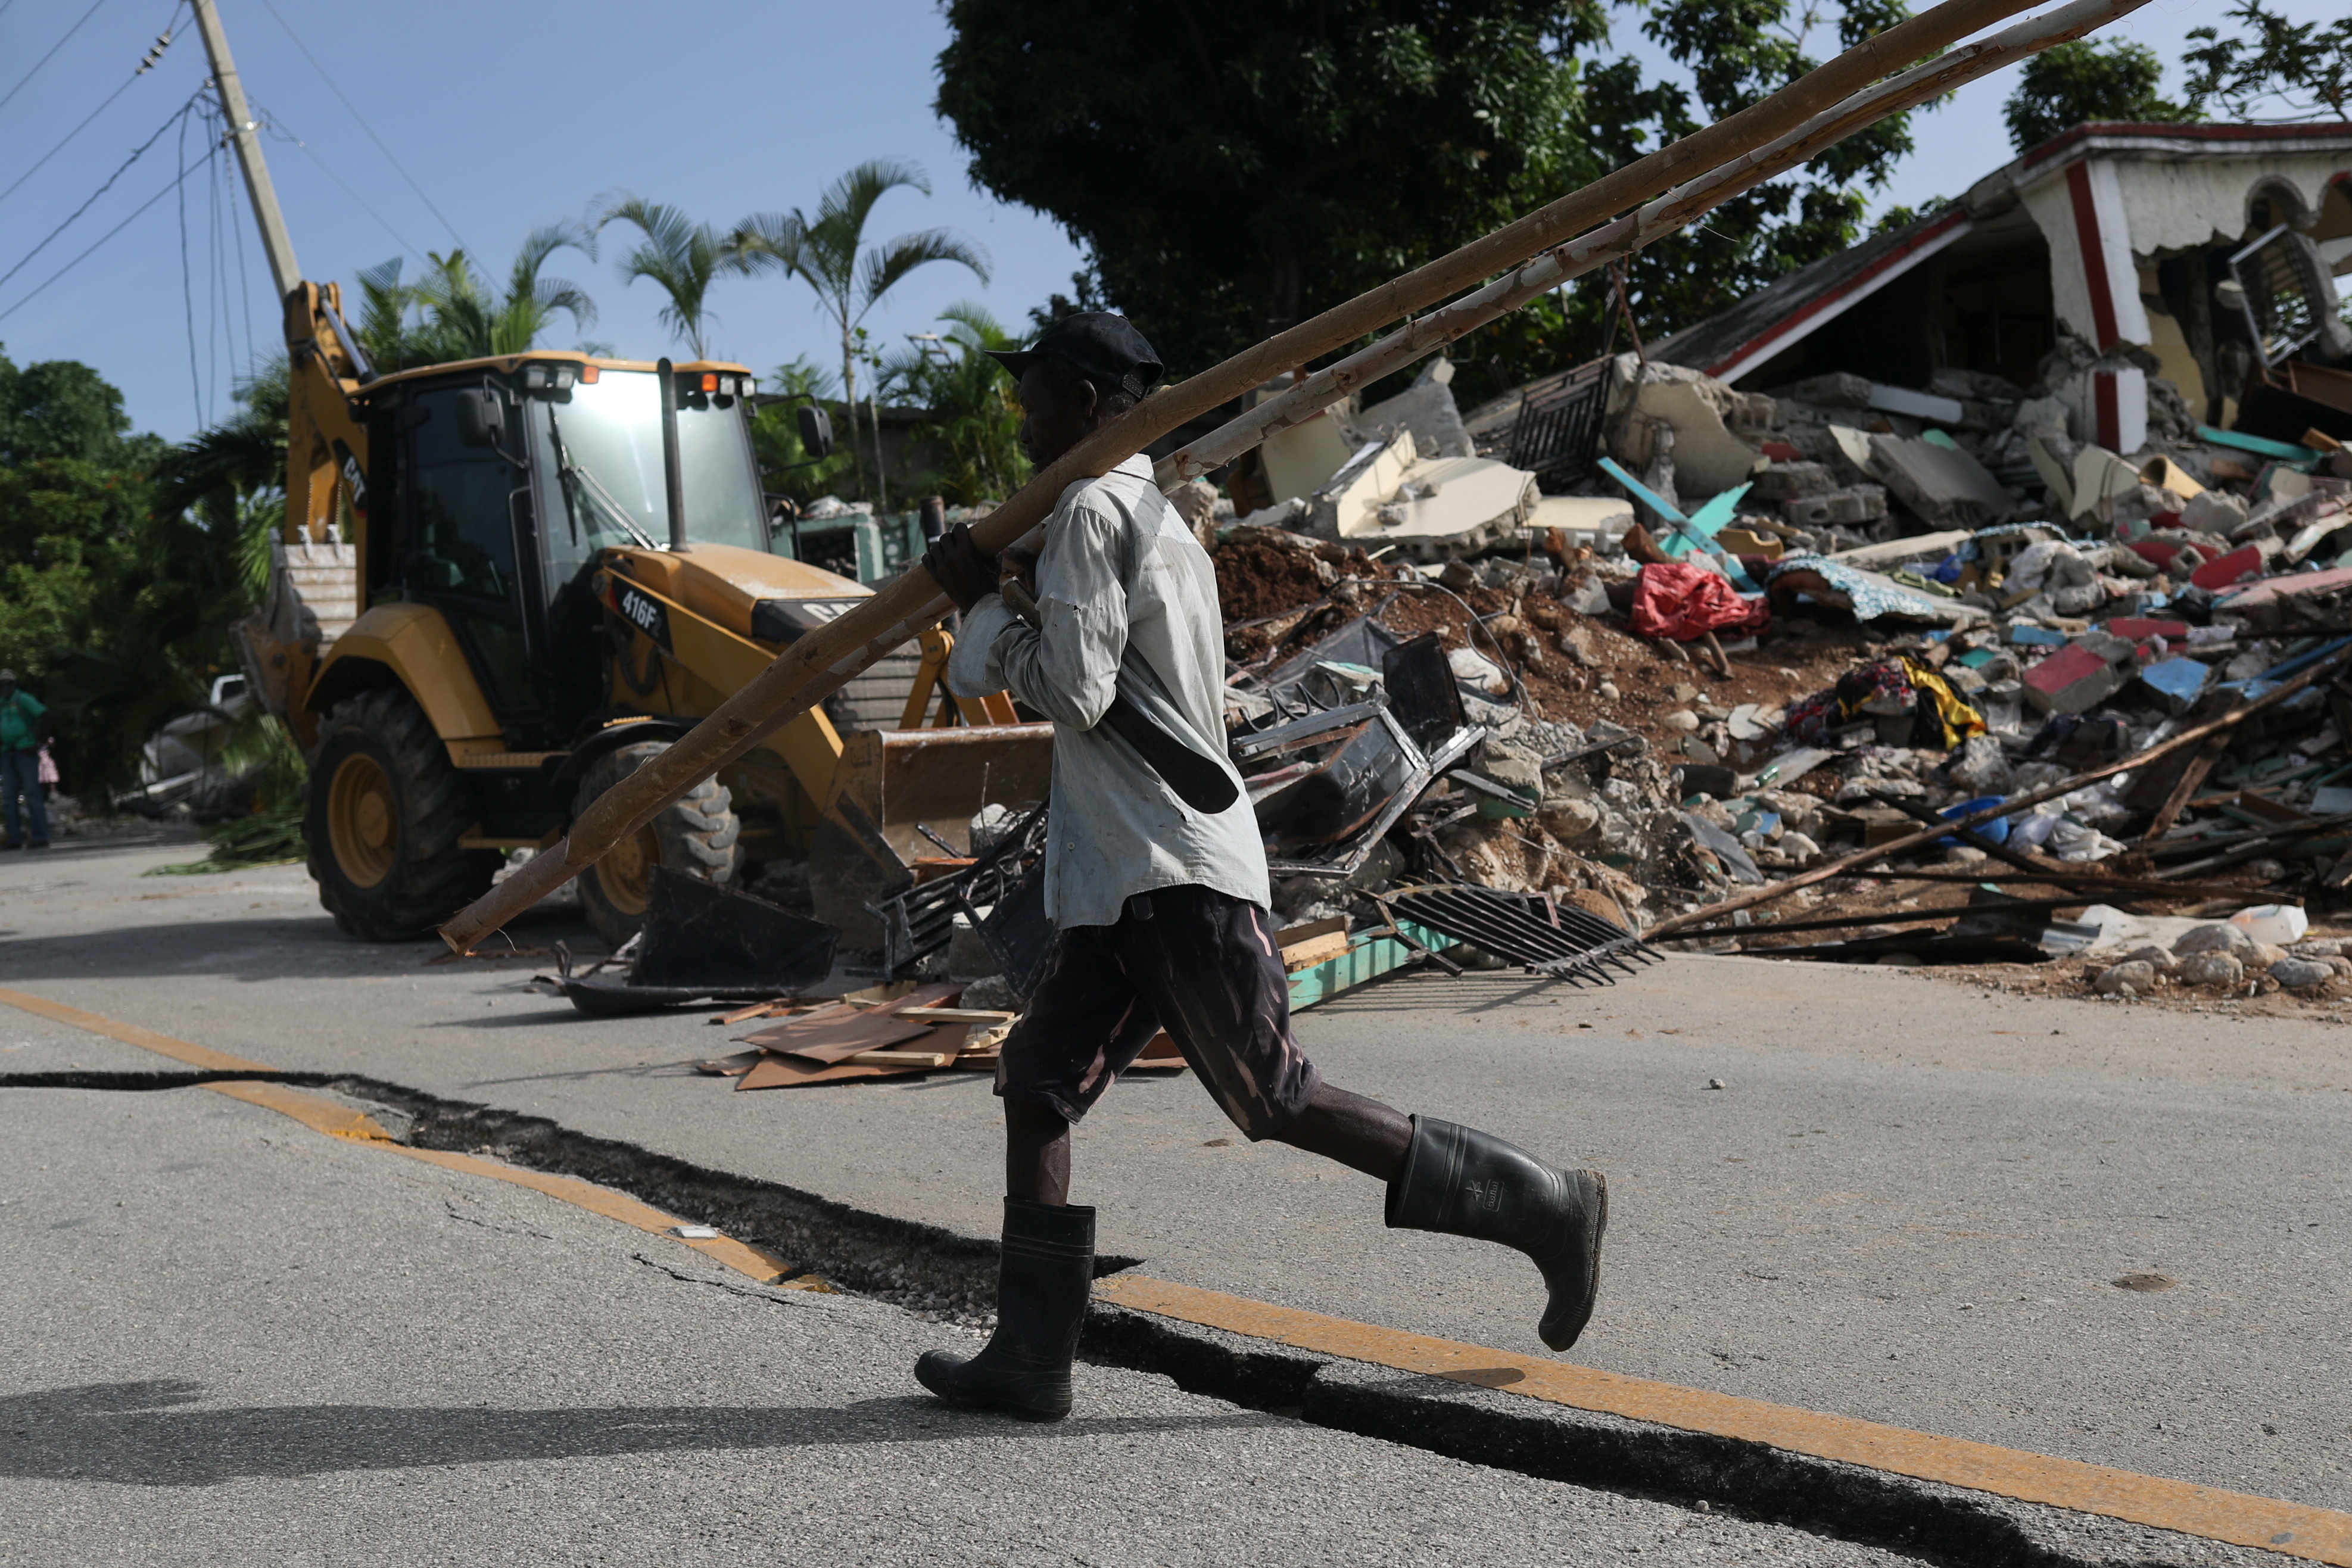 A man walks on a damaged road, after the earthquake that took place on August 14th, in Marceline, near Les Cayes, Haiti August 20, 2021. REUTERS/Henry Romero